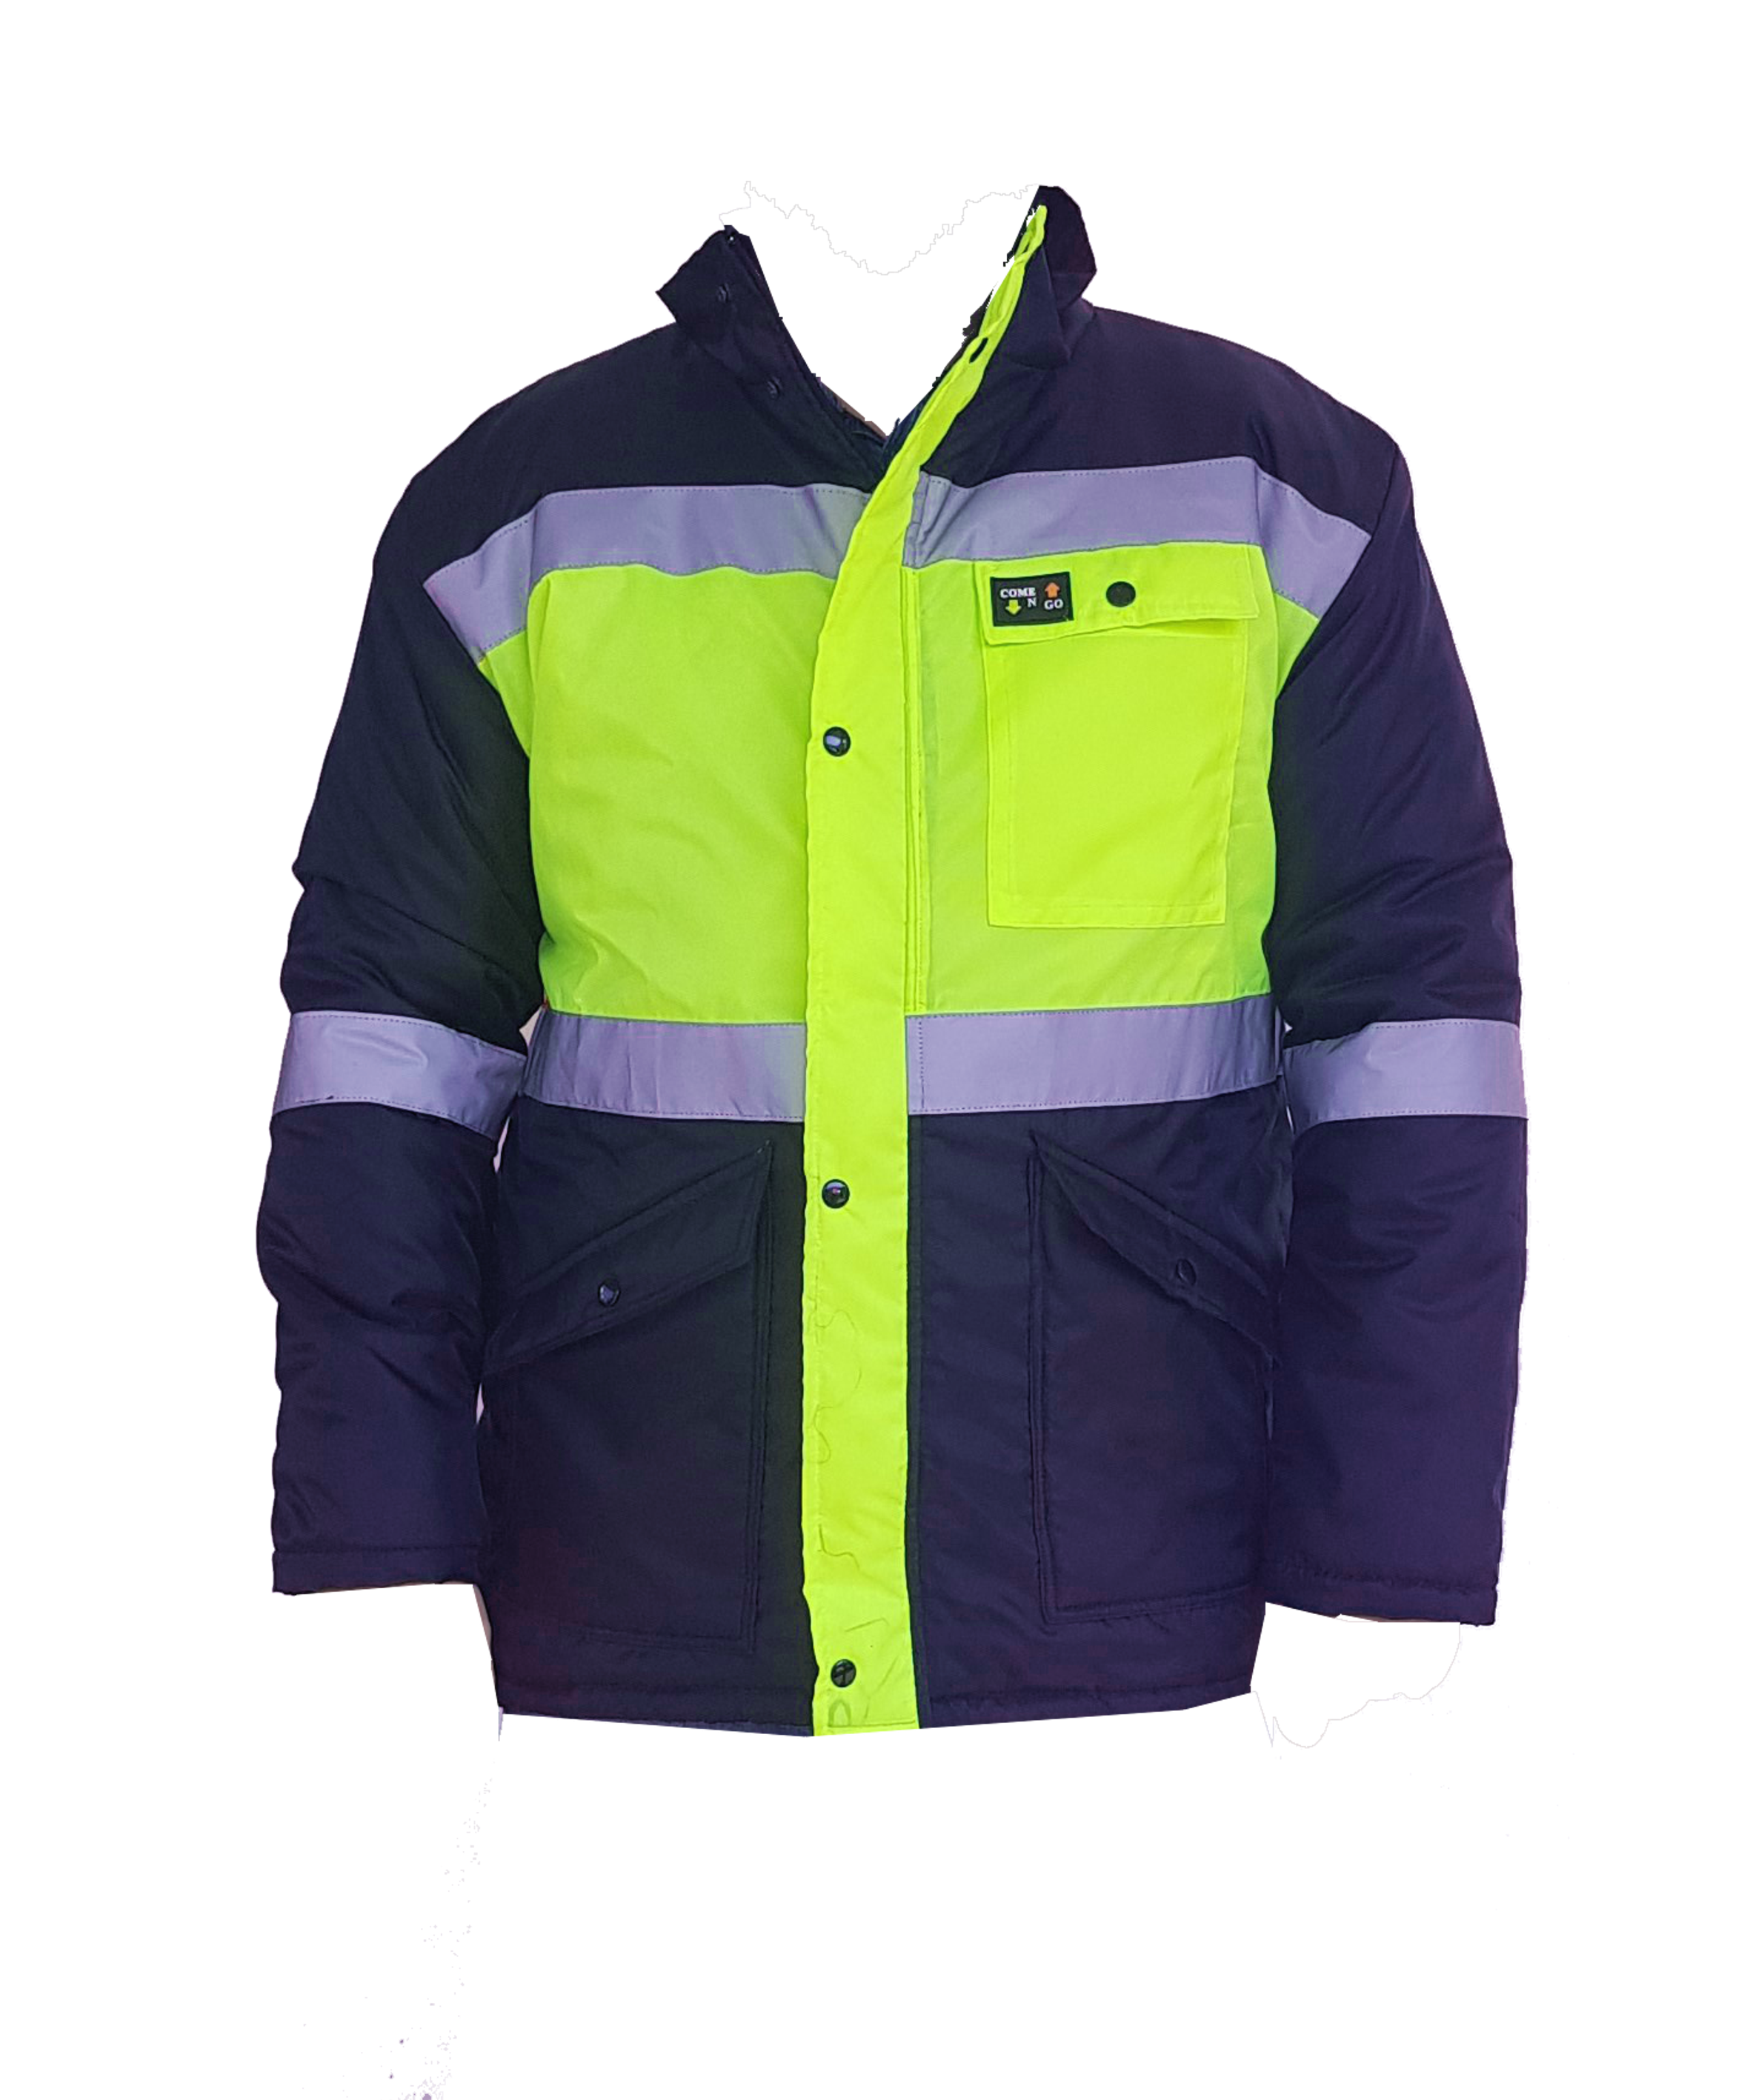 Winter parka jacket, navy with reflective around the middle, arms and chest. 170g fleece lining and 180gm batting. Press studs and zip. Oxford fabric. Water repellent. Navy body and sleeves. Hi-viz lime green front, hi-viz orange at the back.